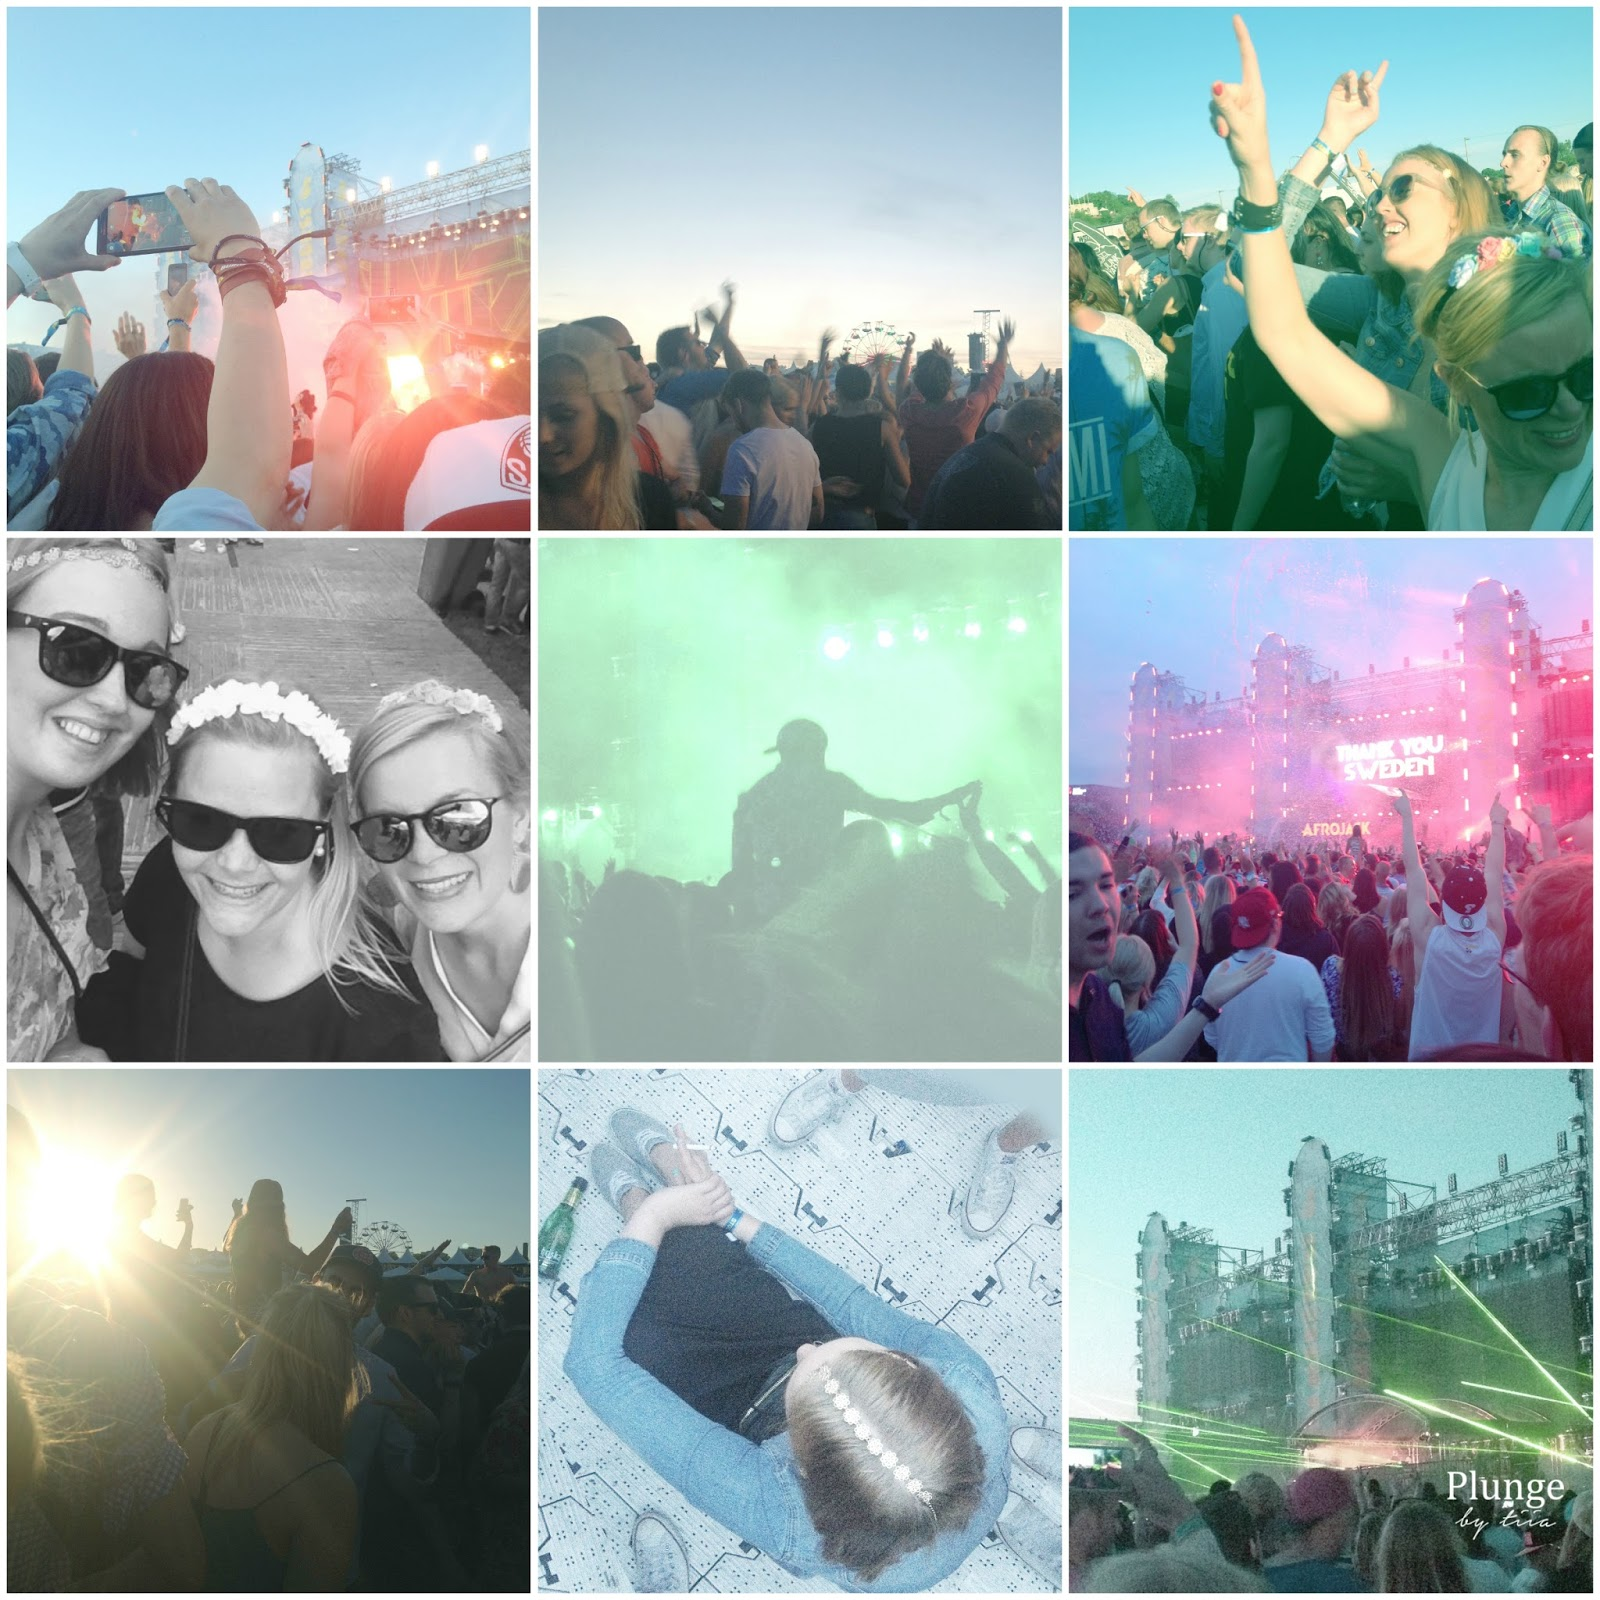 Summerburst 2015